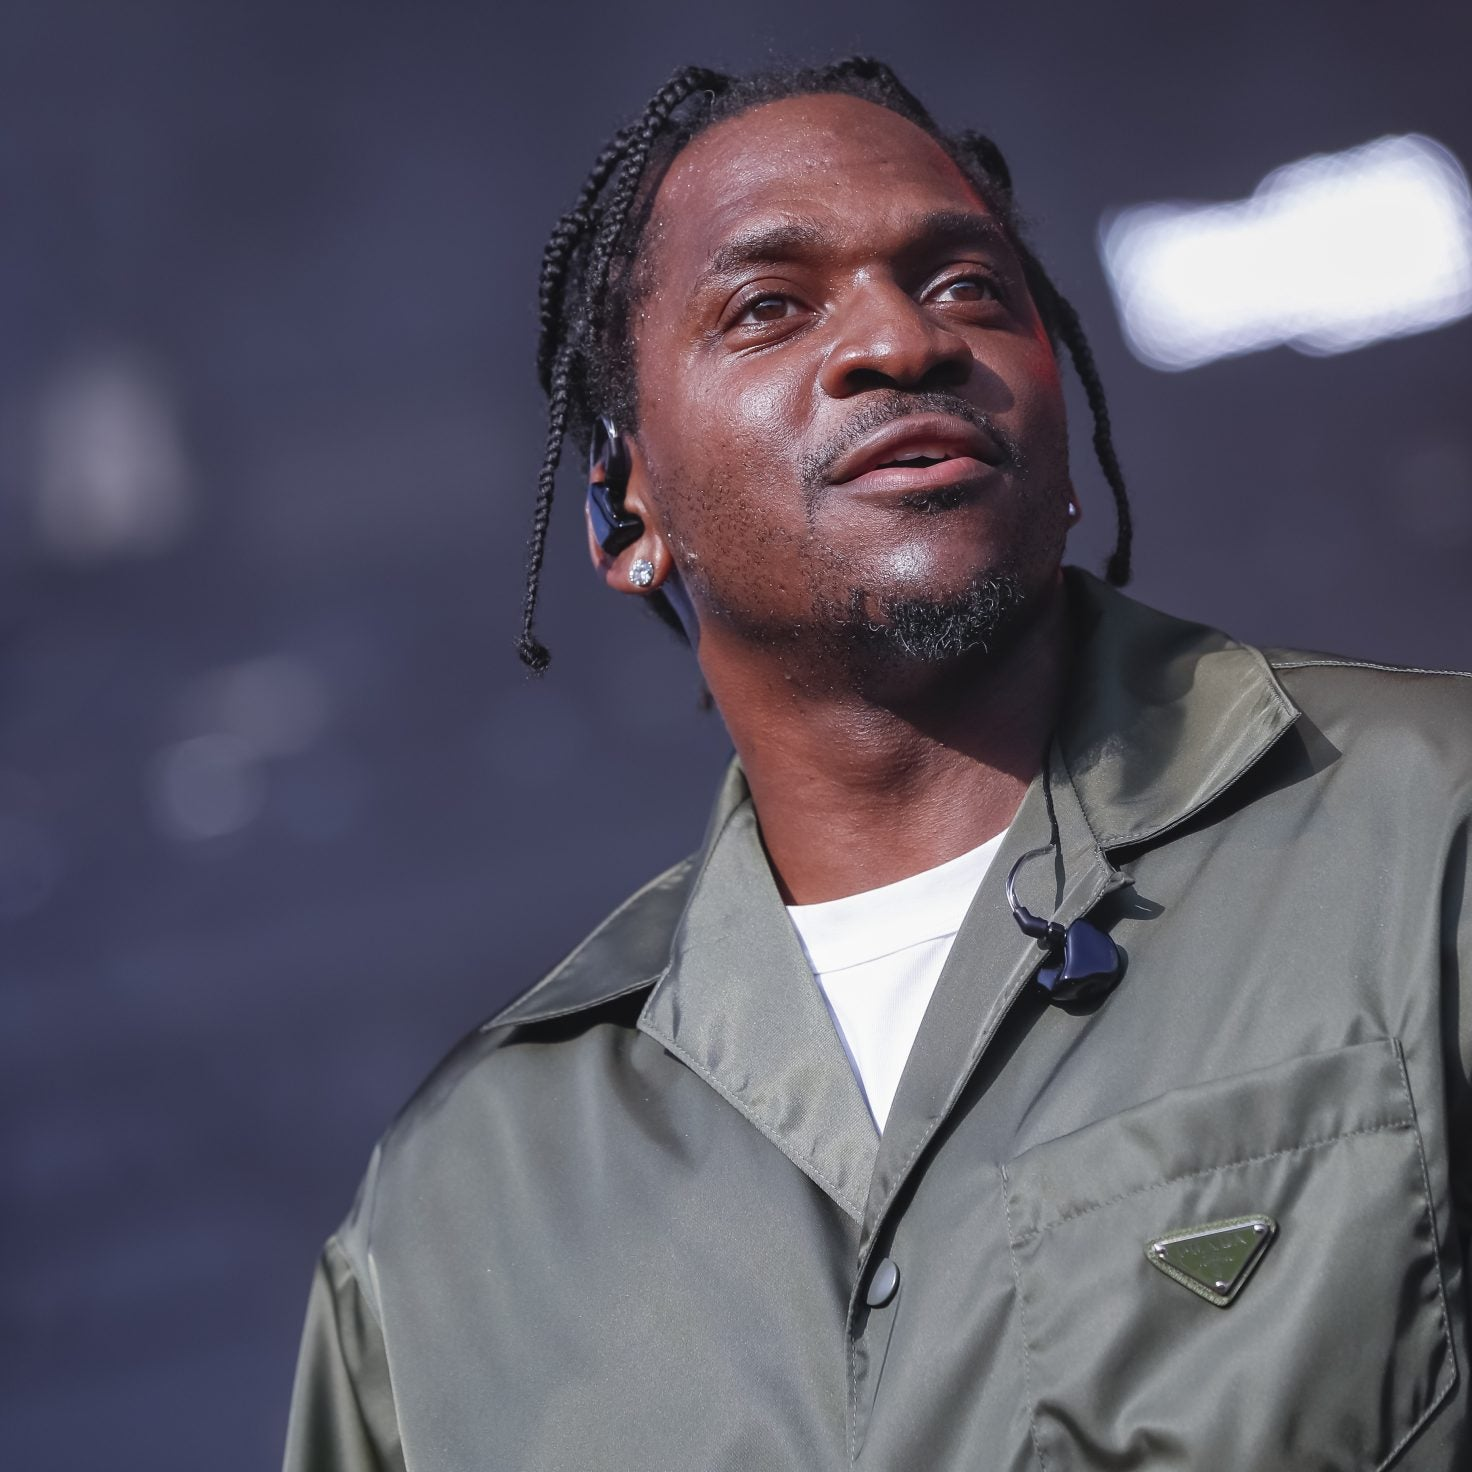 Pusha T Joins Remix Of Award-Winning Theme Song Of HBO's 'Succession'